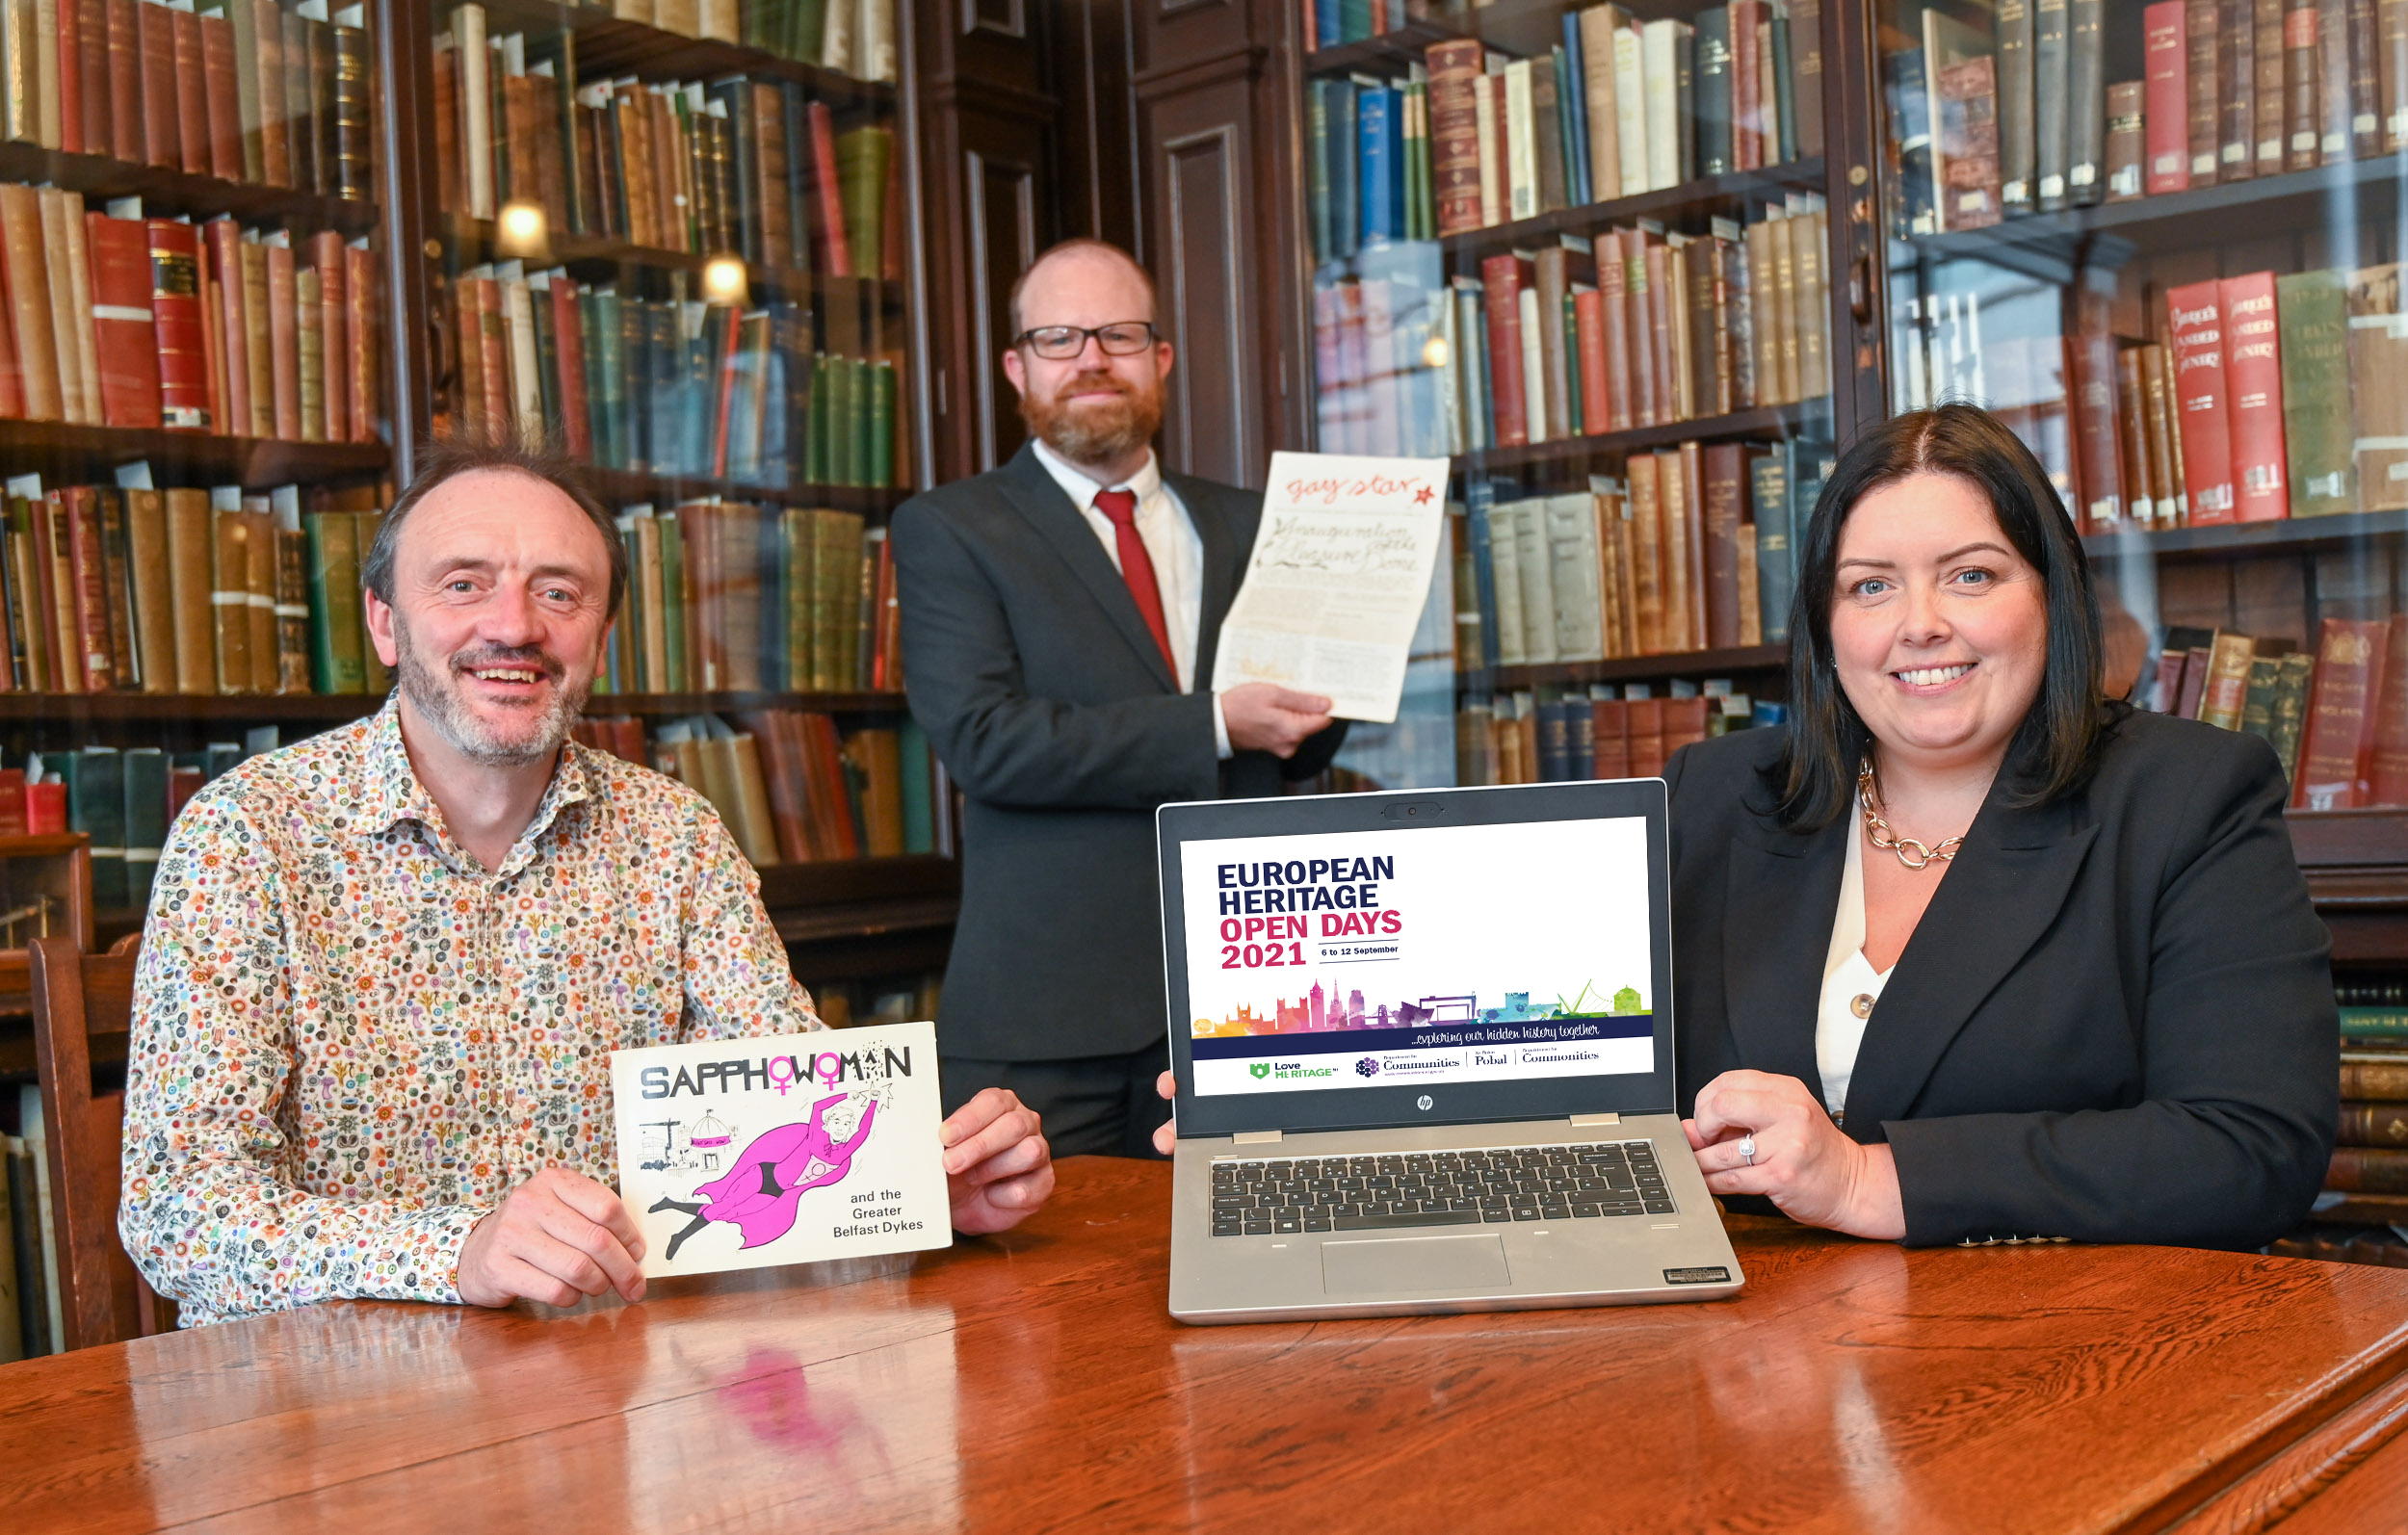 Excitement builds for European Heritage Open Days 2021 - Newry Times - newry newspaper